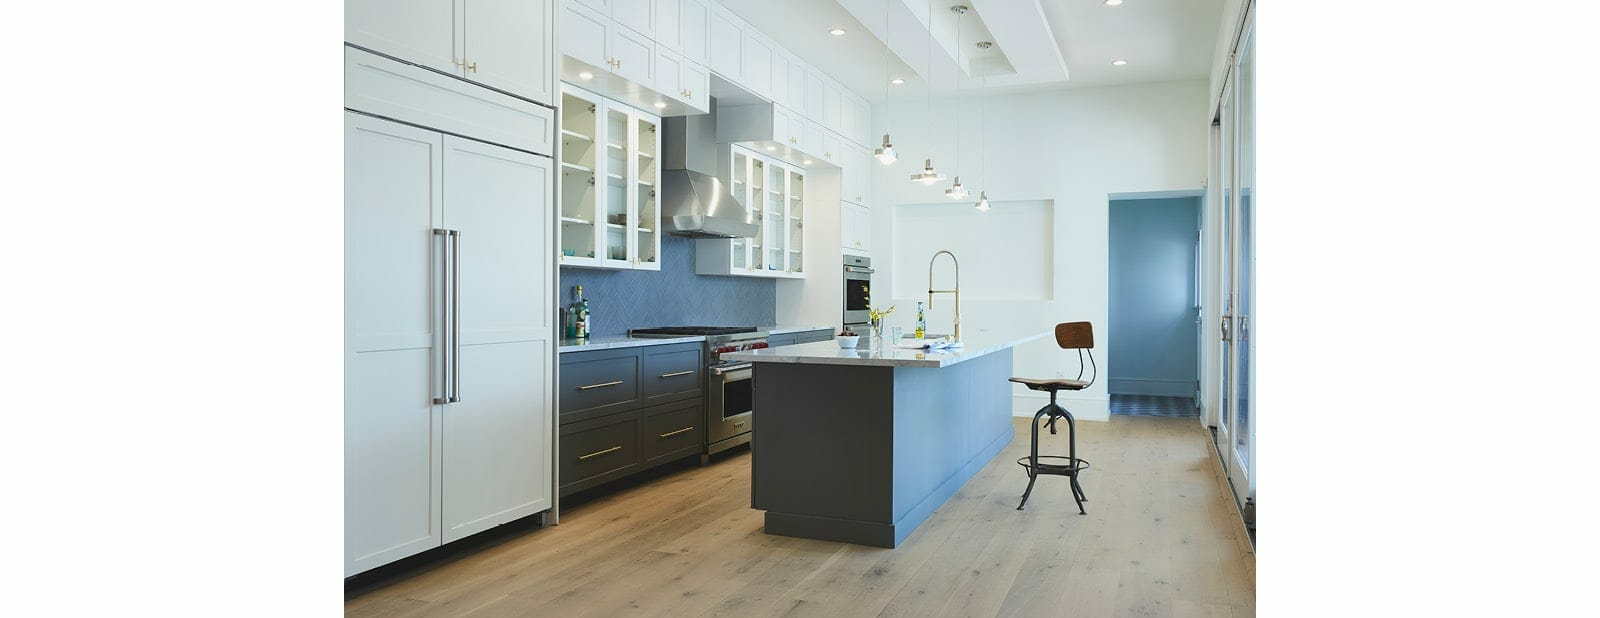 christian street residence kitchen